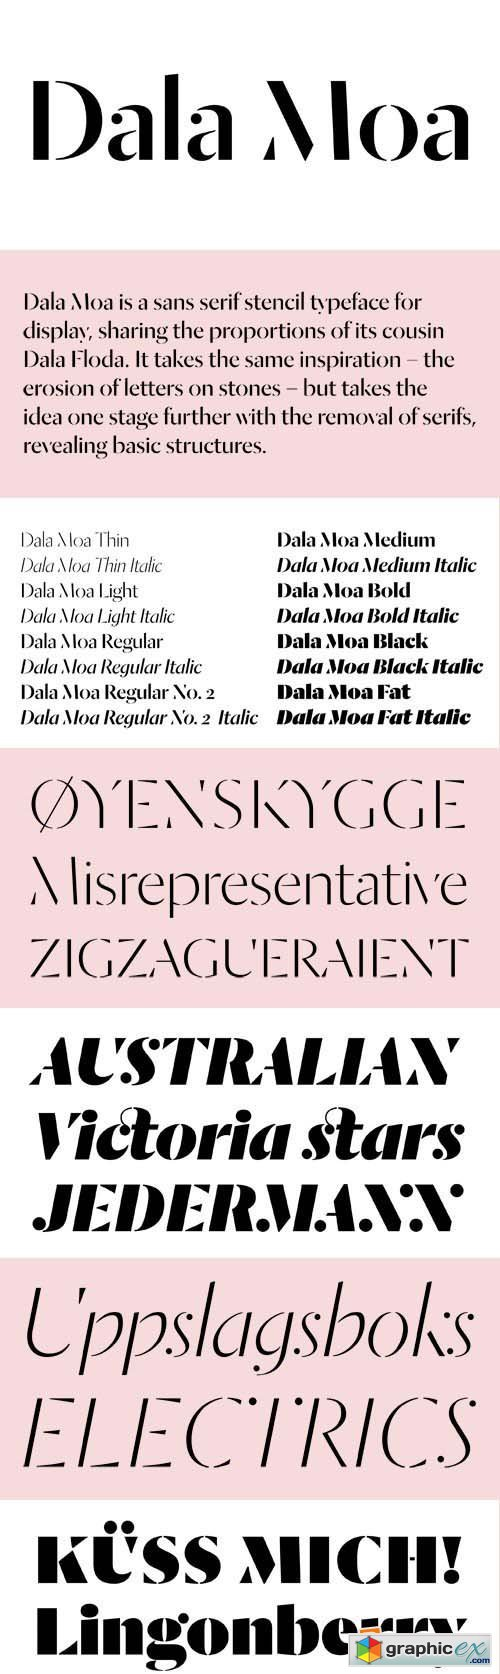 Dala Moa Font Family - 16 Fonts for $350